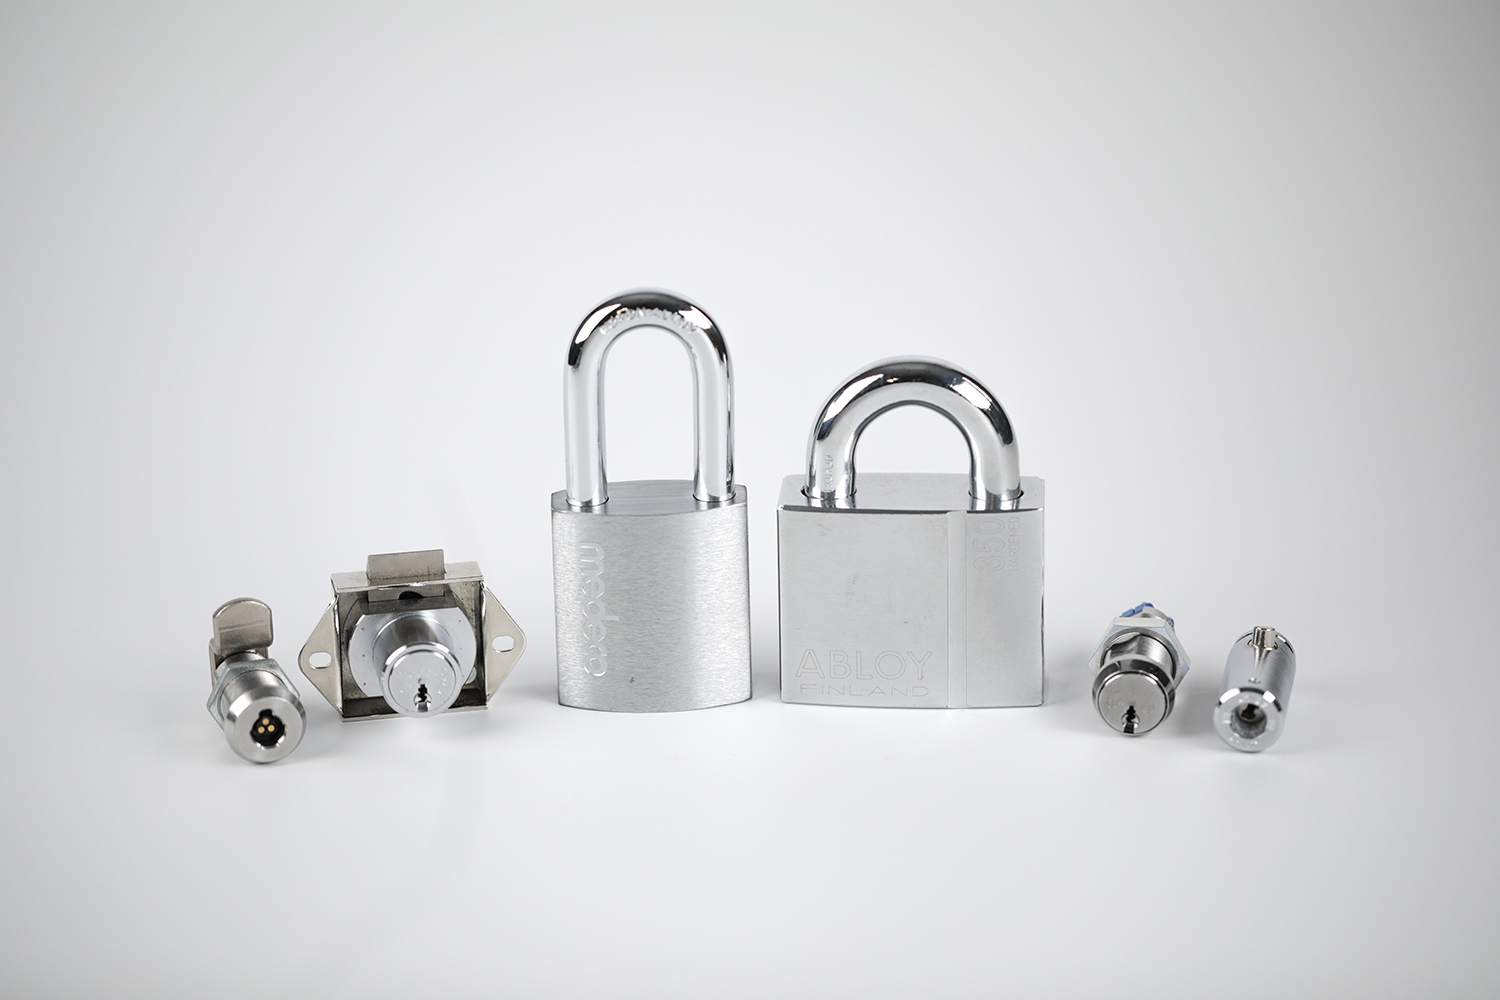 Midwest Auxiliary Locks